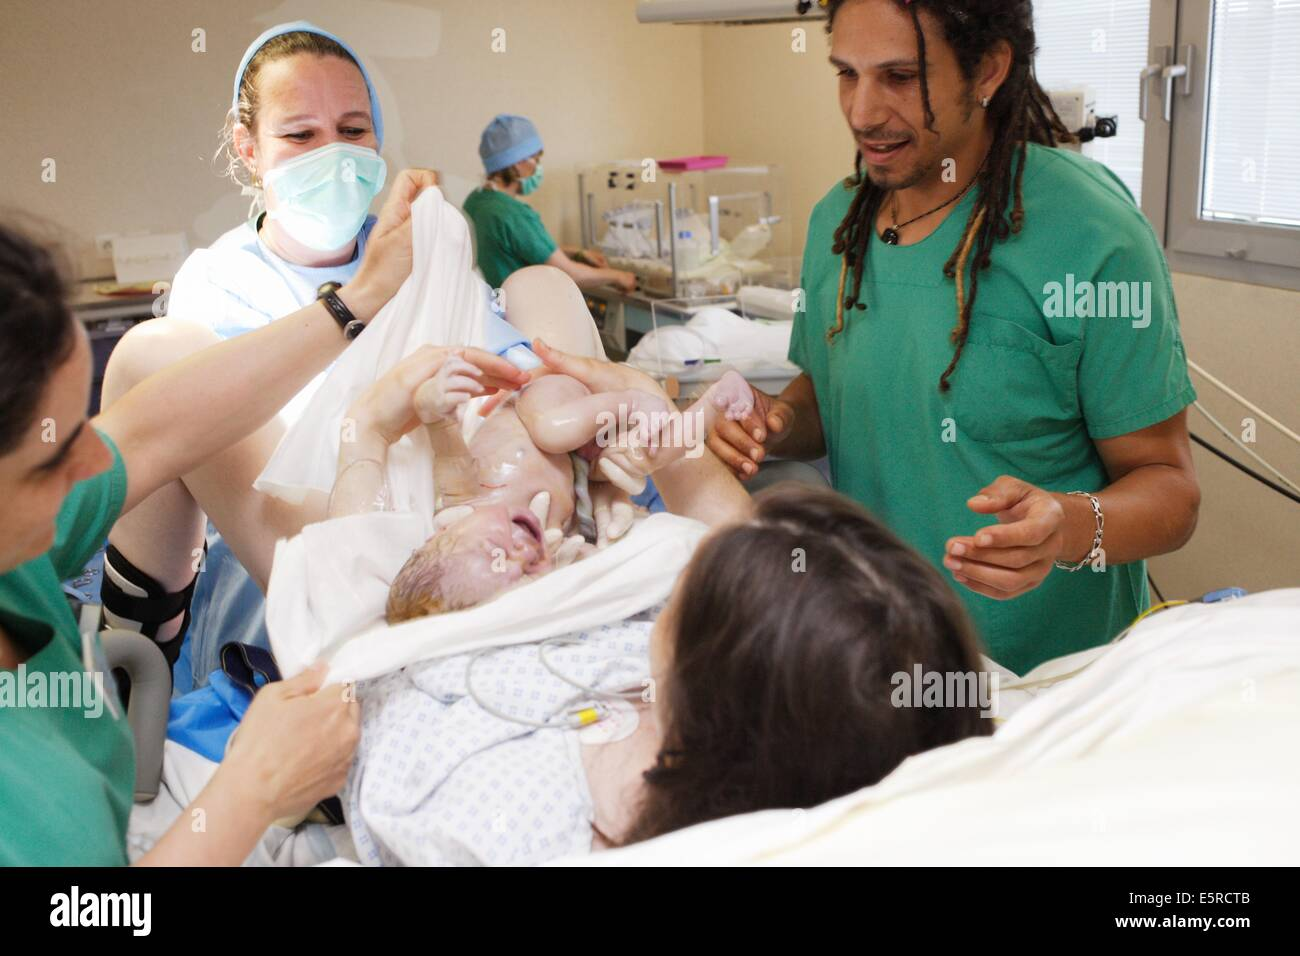 Free Images Of Baby Being Born Delivery Room